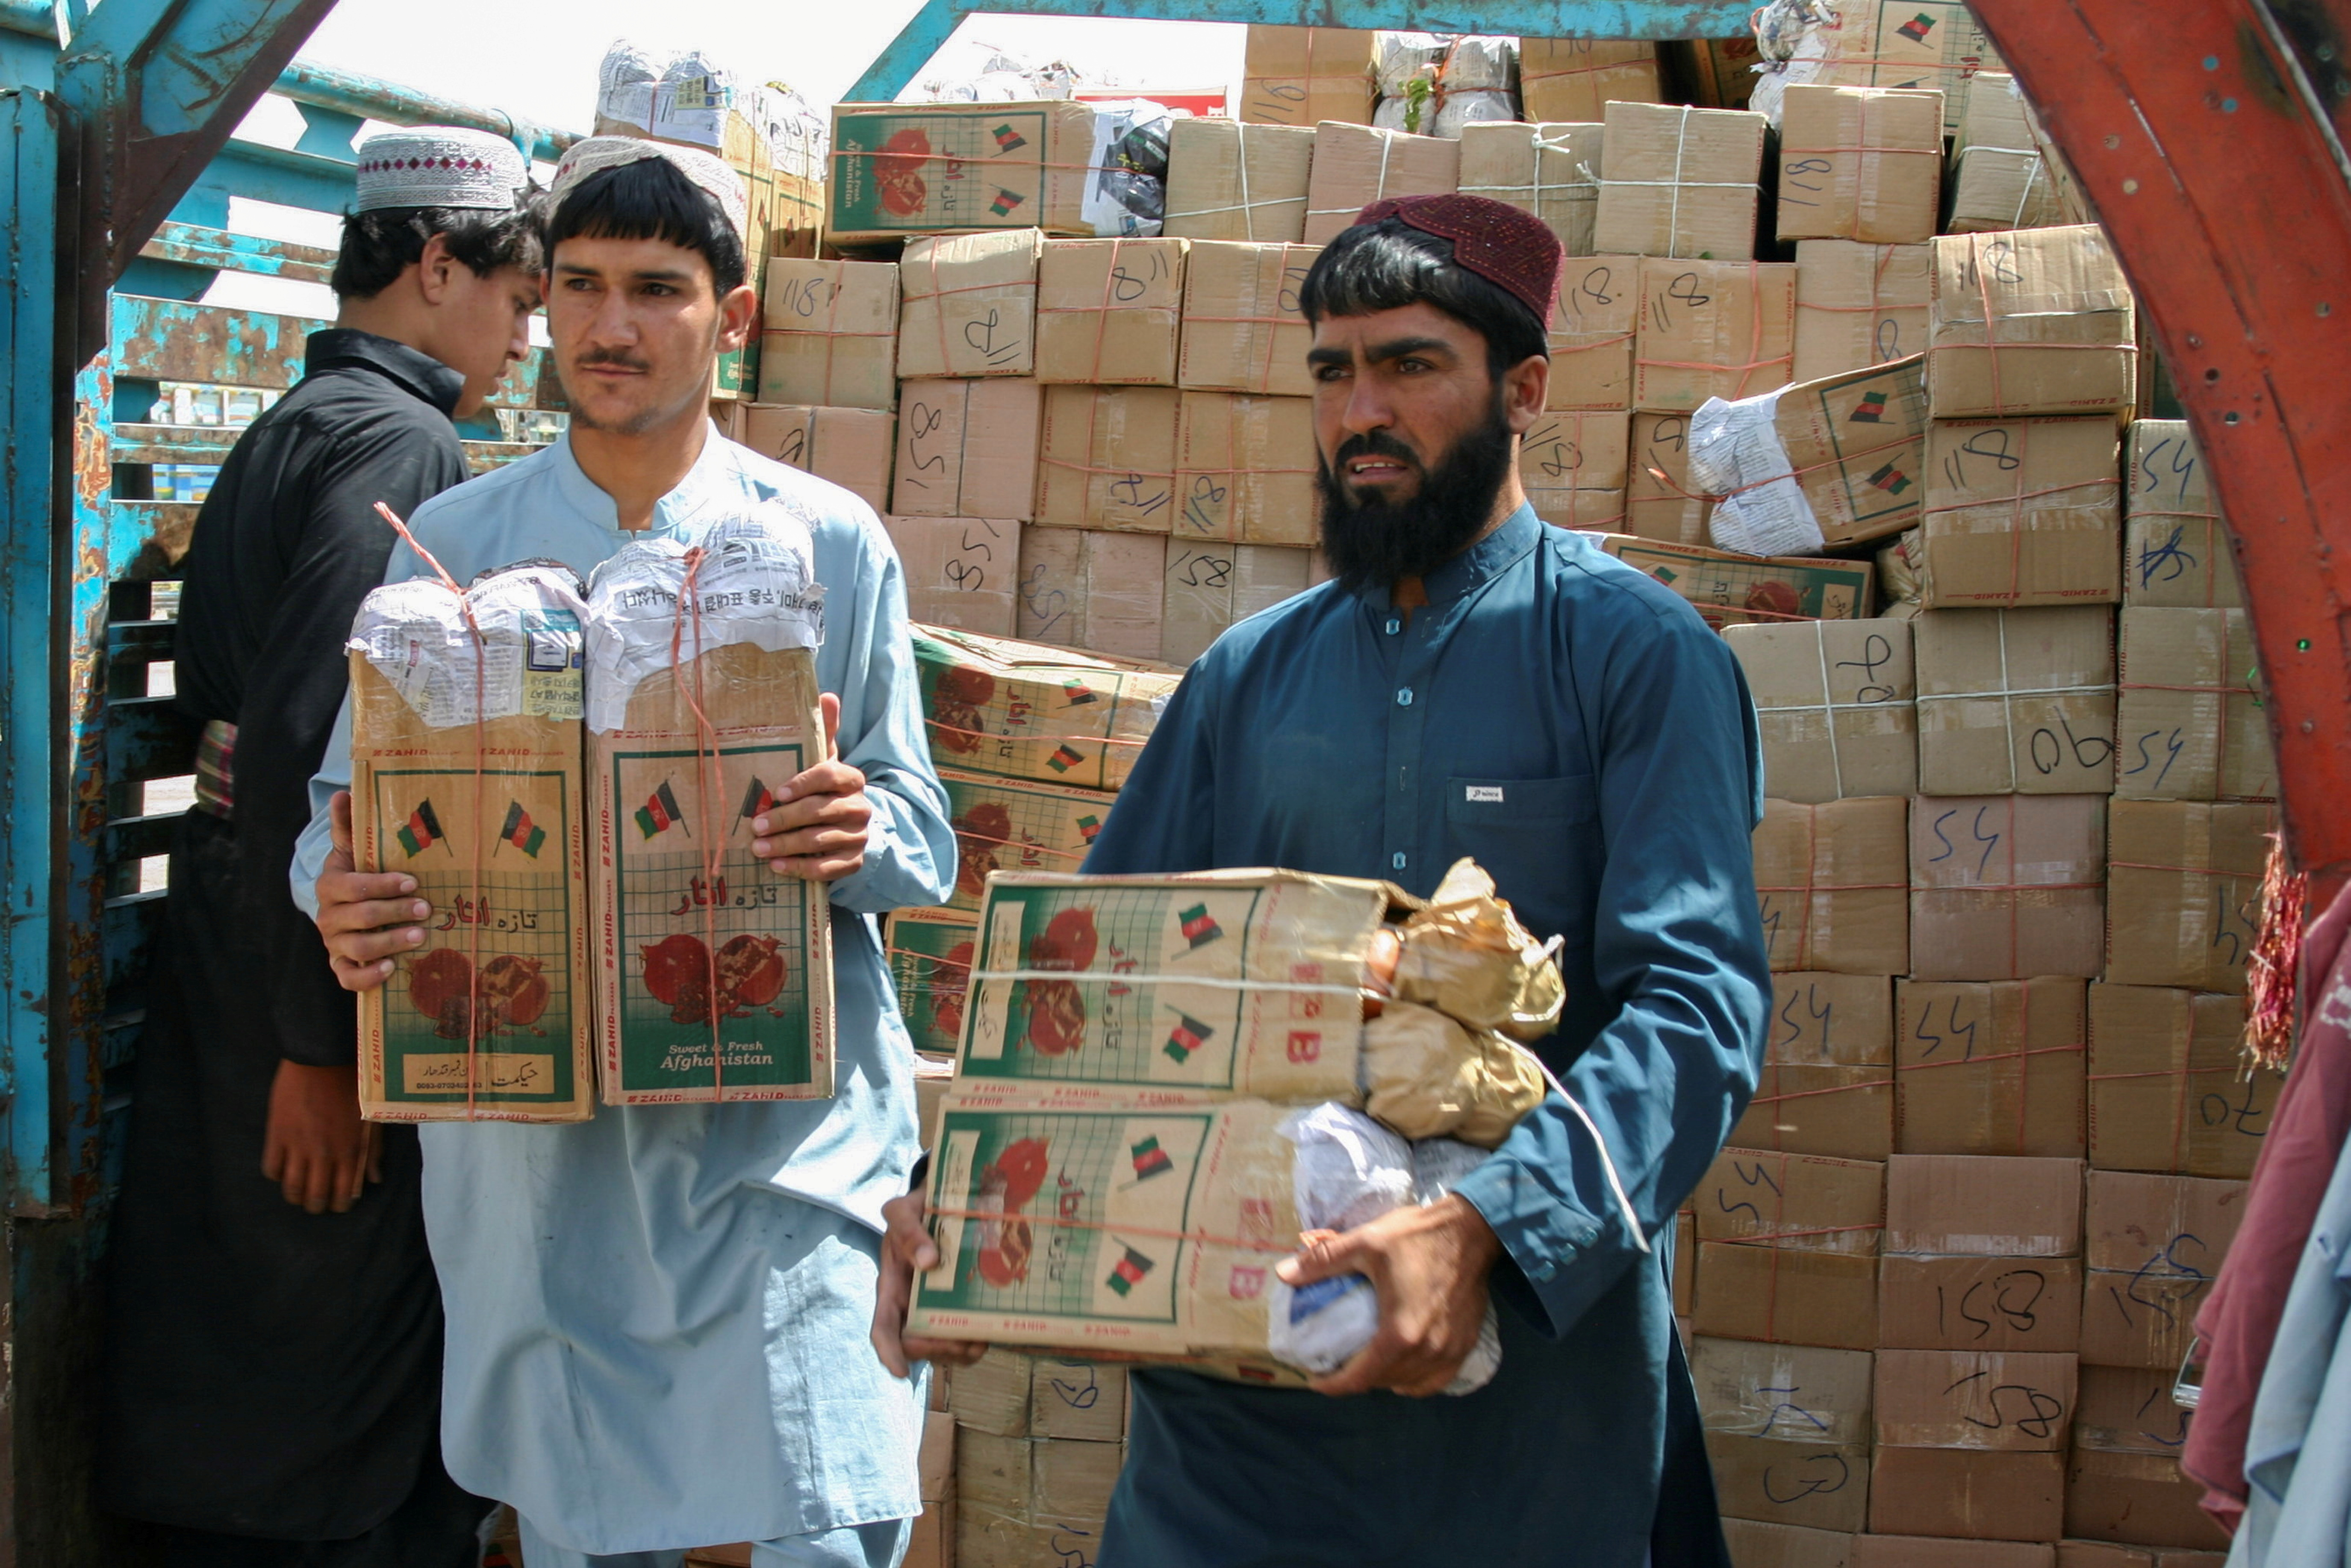 Labourers unload boxes of pomegranates from Afghanistan, from a truck at the 'Friendship Gate' crossing point, in the Pakistan-Afghanistan border town of Chaman, Pakistan, September 7, 2021. REUTERS/Saeed Ali Achakzai/File Photo